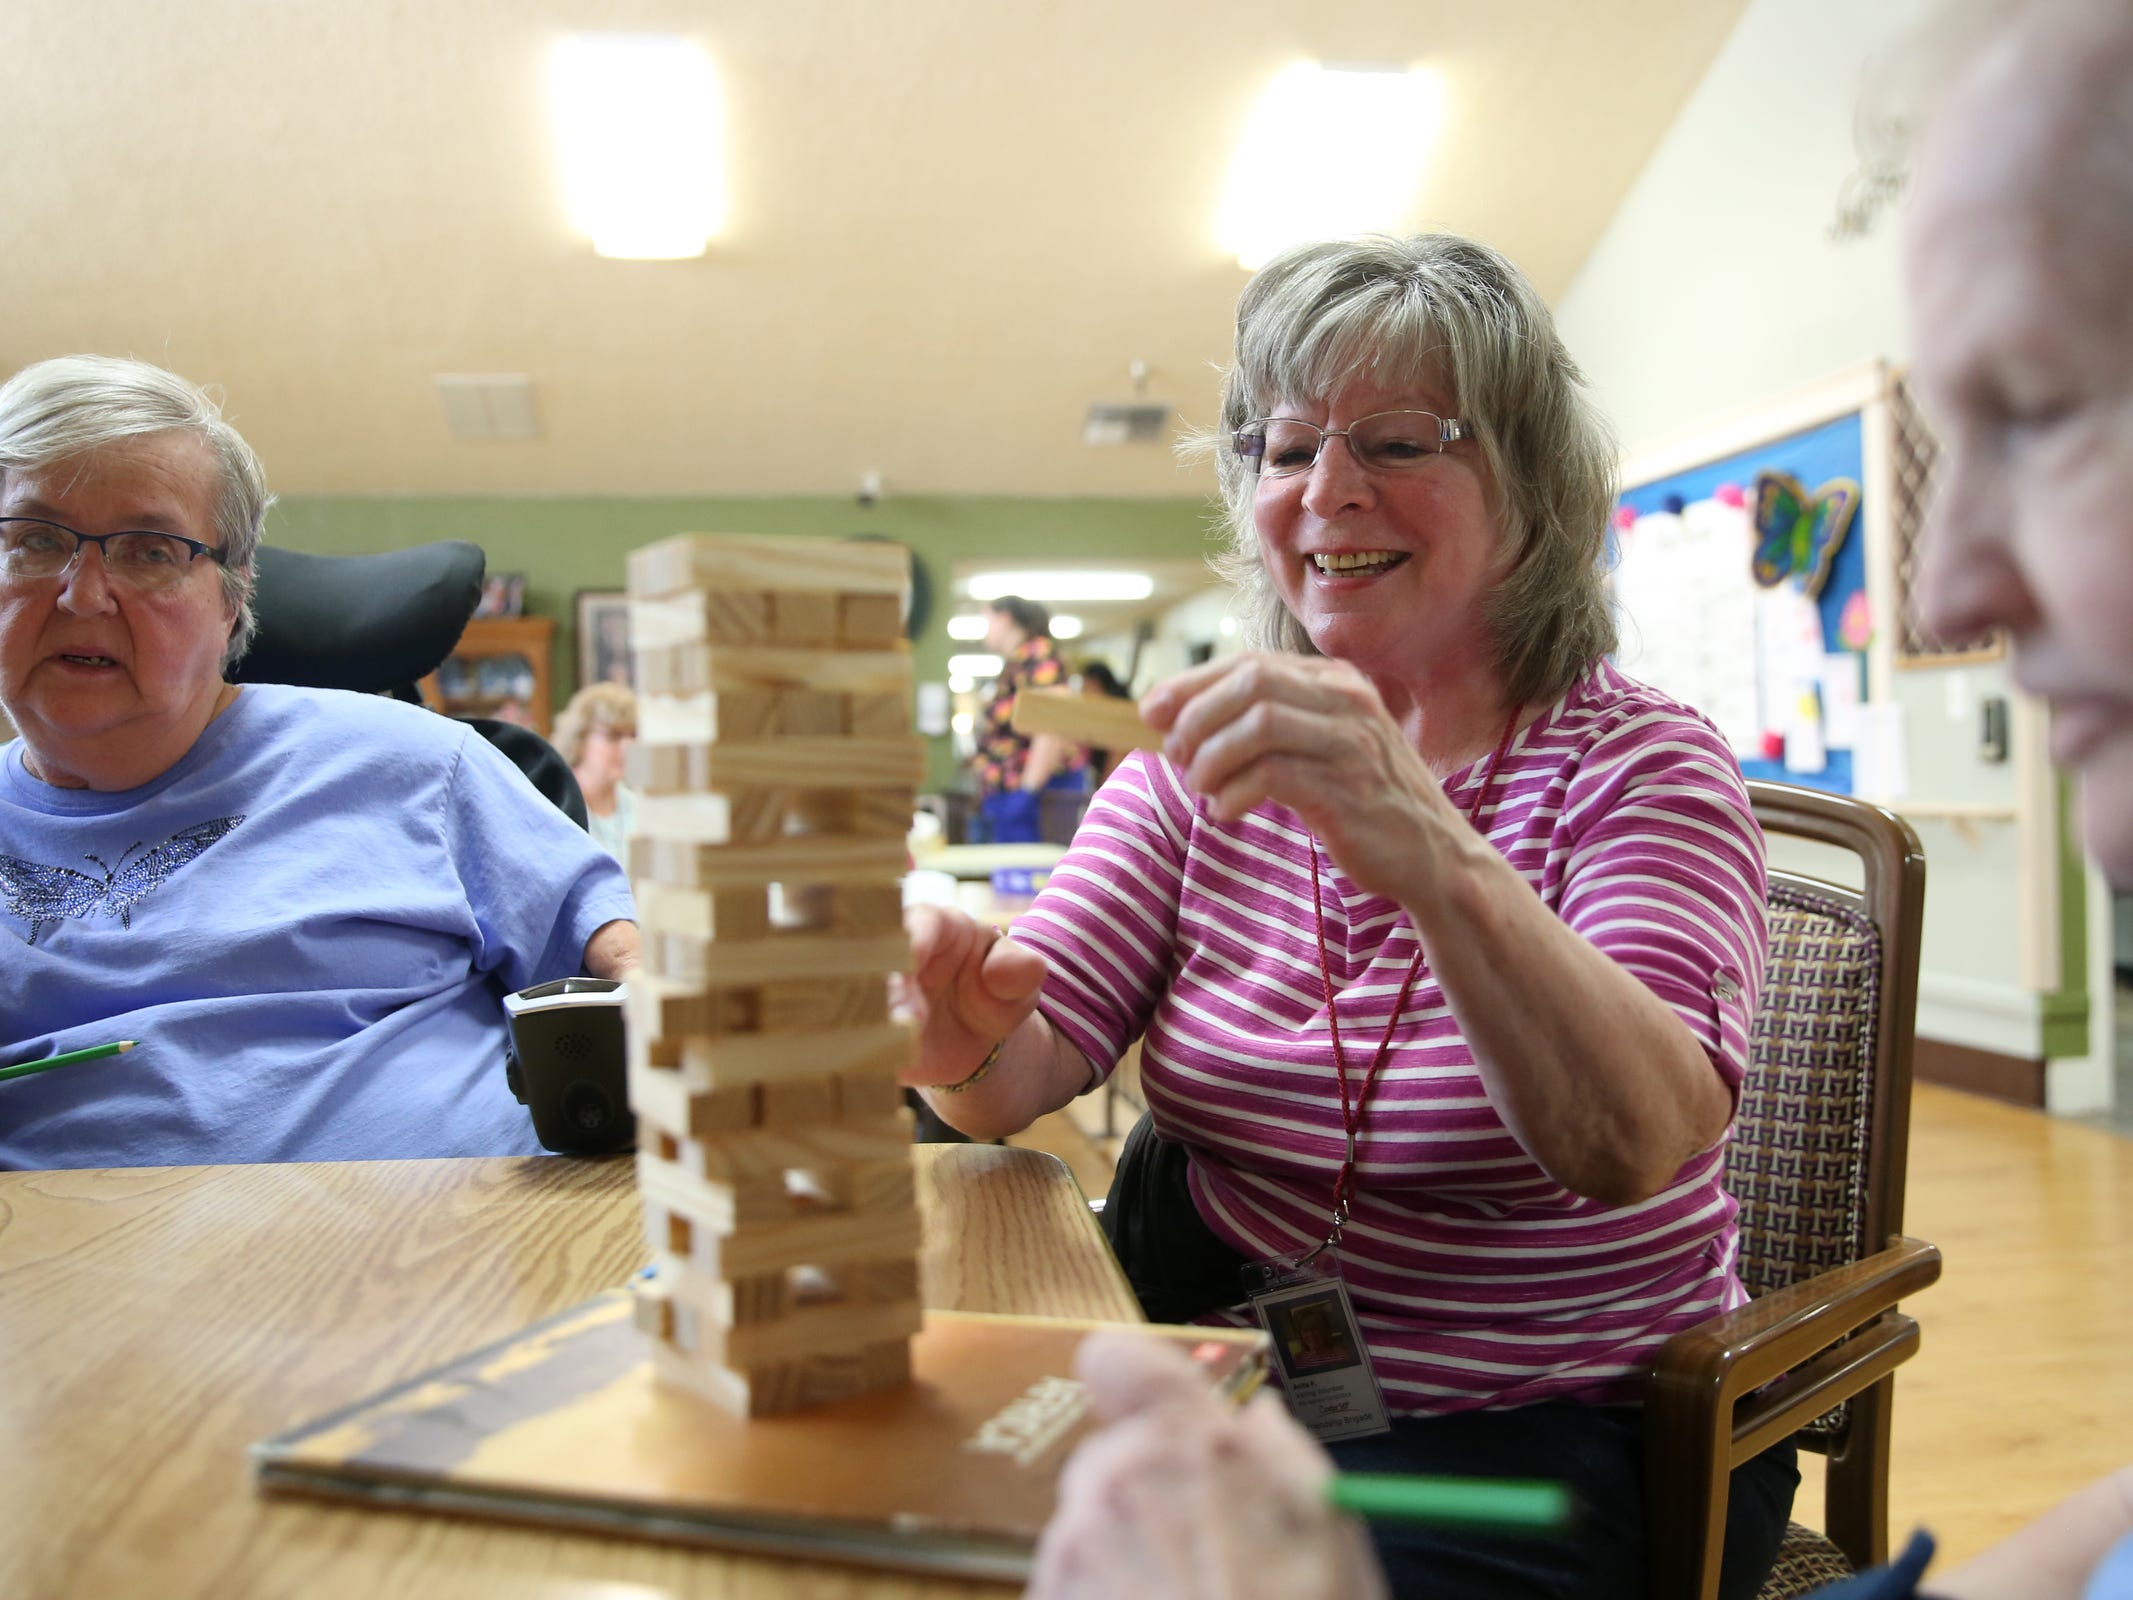 Volunteer Anita Felion, center, plays a game with Lucy Buntjer, left, and Shirley Wiltgen during a visit by the Friendship Brigade, a group of volunteers that focuses on spreading awareness about senior isolation and loneliness, at The Oaks at Sherwood Park in in Keizer on May 9, 2019.